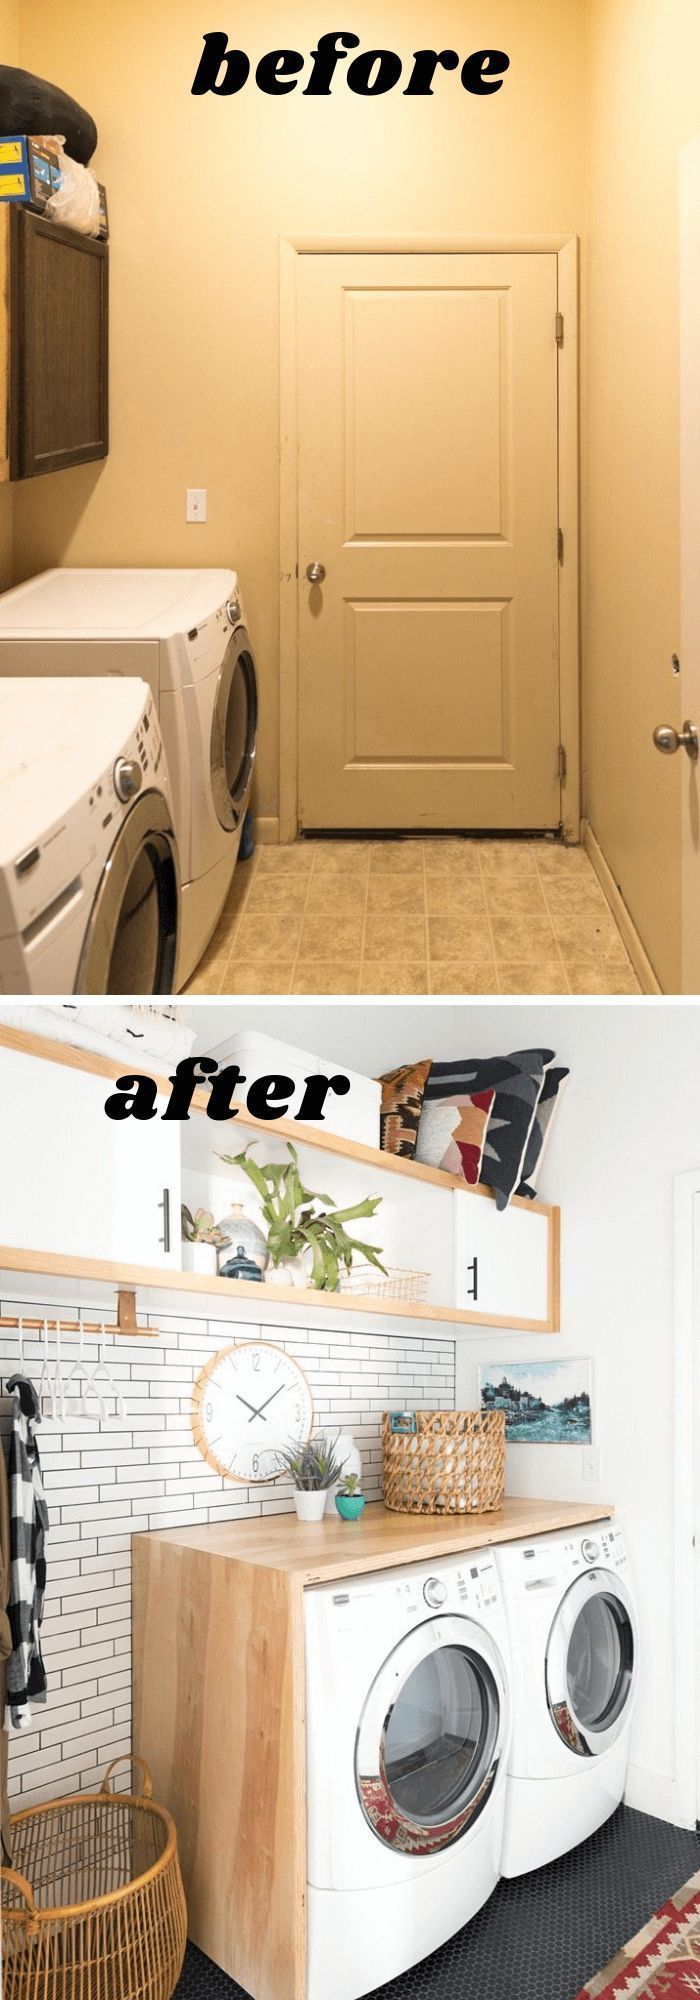 14+ Laundry Room Makeover Ideas on a Budget for 2019 #waterfallcountertop DIY Plywood Waterfall Countertop | Budget Laundry Room Makeover: Before and After #laundryroommakeover #laundryroomideas #laundryroomdecorideas #farmfoodfamily #waterfallcountertop 14+ Laundry Room Makeover Ideas on a Budget for 2019 #waterfallcountertop DIY Plywood Waterfall Countertop | Budget Laundry Room Makeover: Before and After #laundryroommakeover #laundryroomideas #laundryroomdecorideas #farmfoodfamily #waterfallcountertop